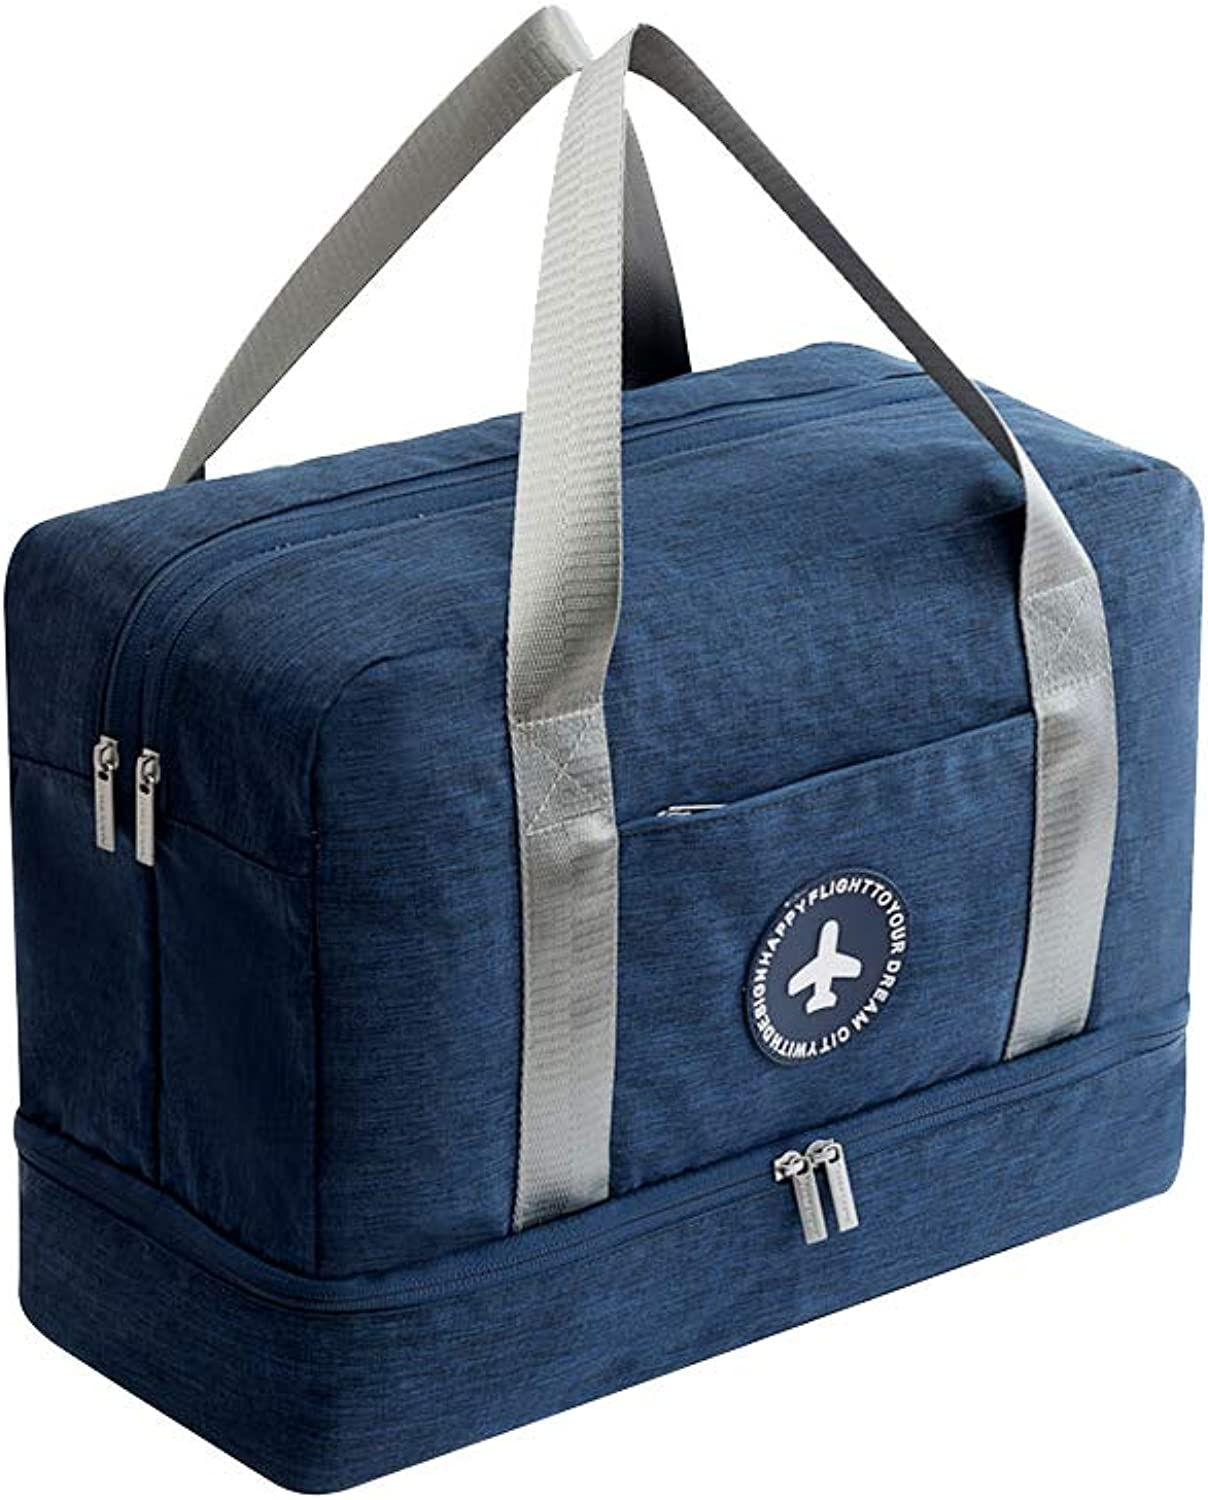 Lightweight Travel Duffel Bag Waterproof Sports Gym Bag with shoes Compartment for Men and Women, blueee